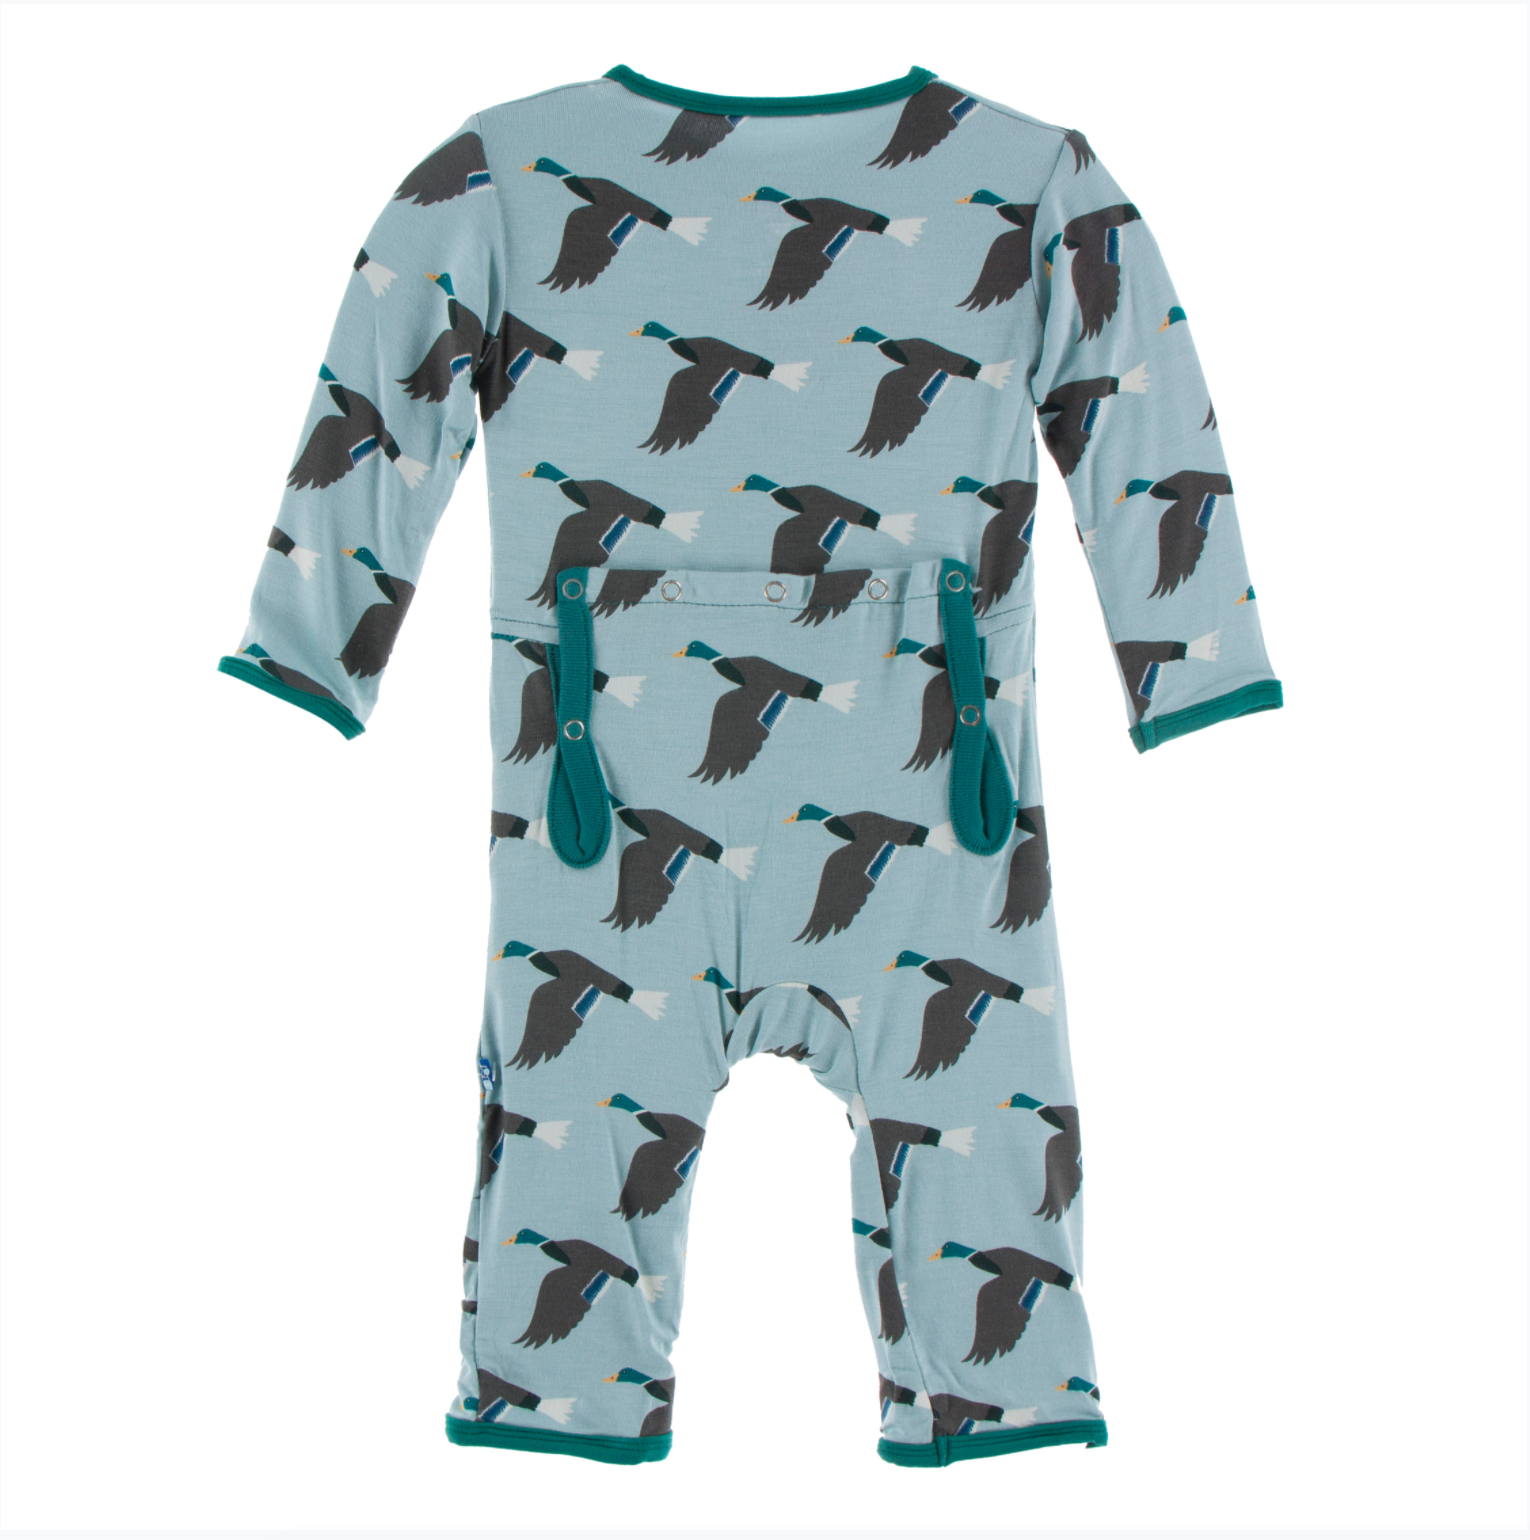 KicKee Pants Print Coverall with Zipper - Jade Mallard Duck